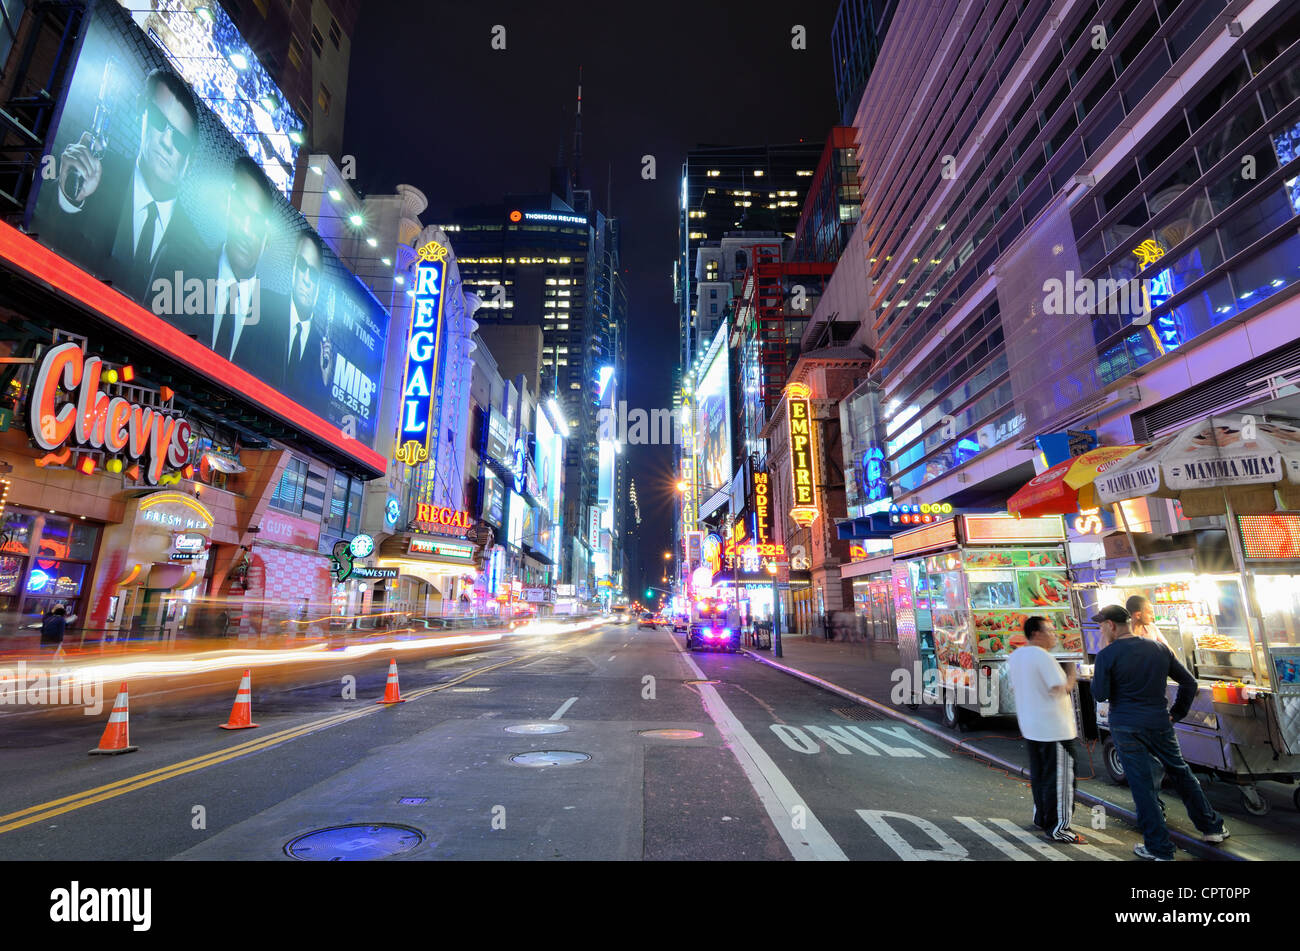 42nd St runs towards Times Square in New York, New York. - Stock Image